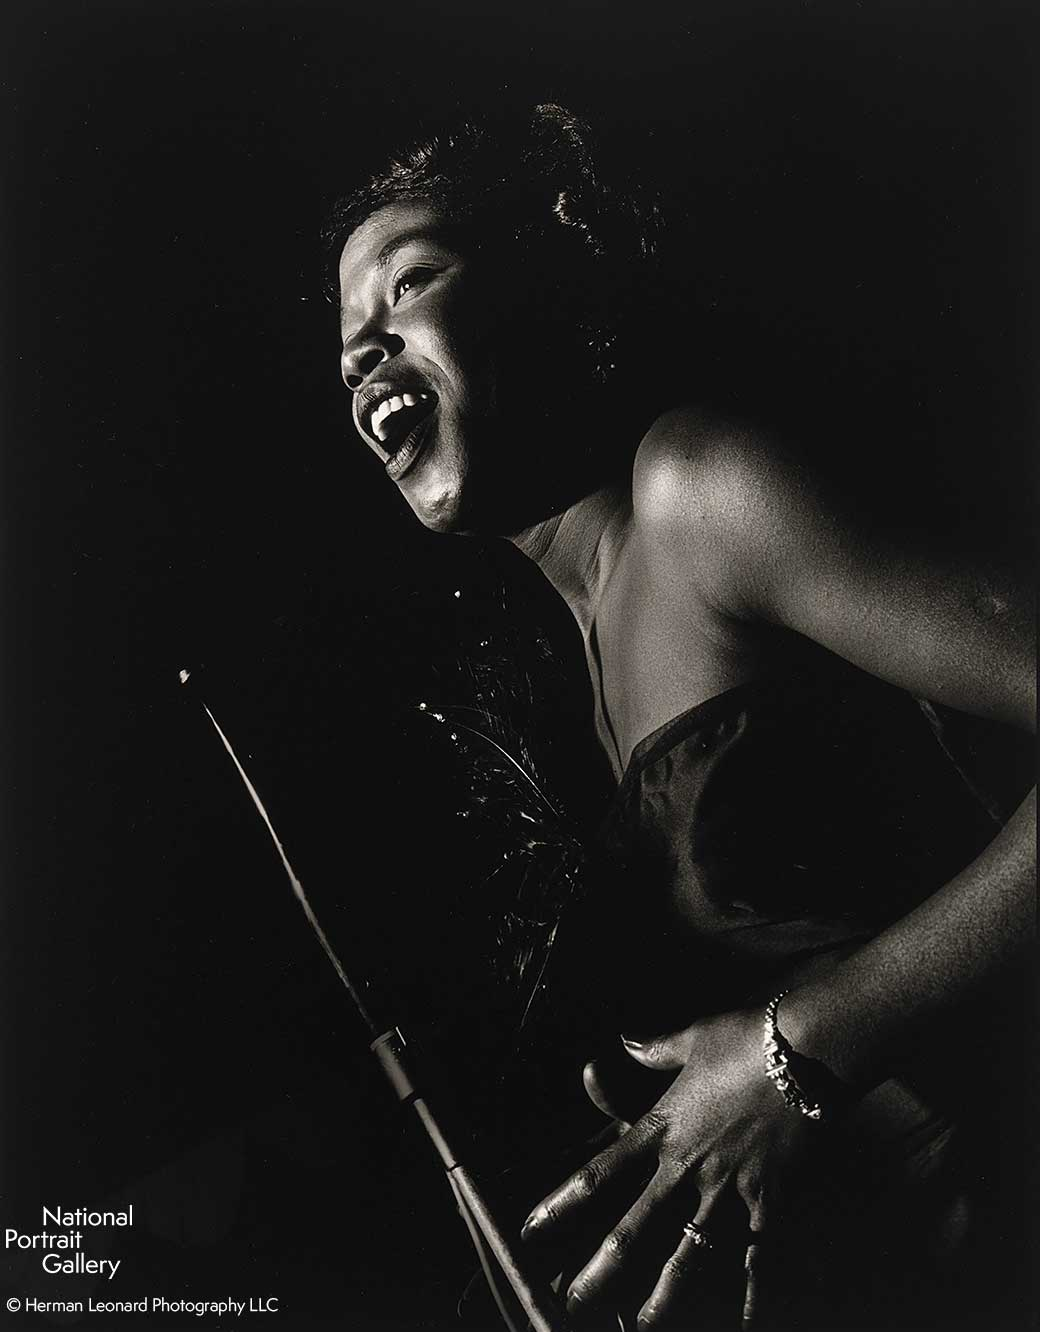 Black and white image of a woman standing in profile singing into a microphone